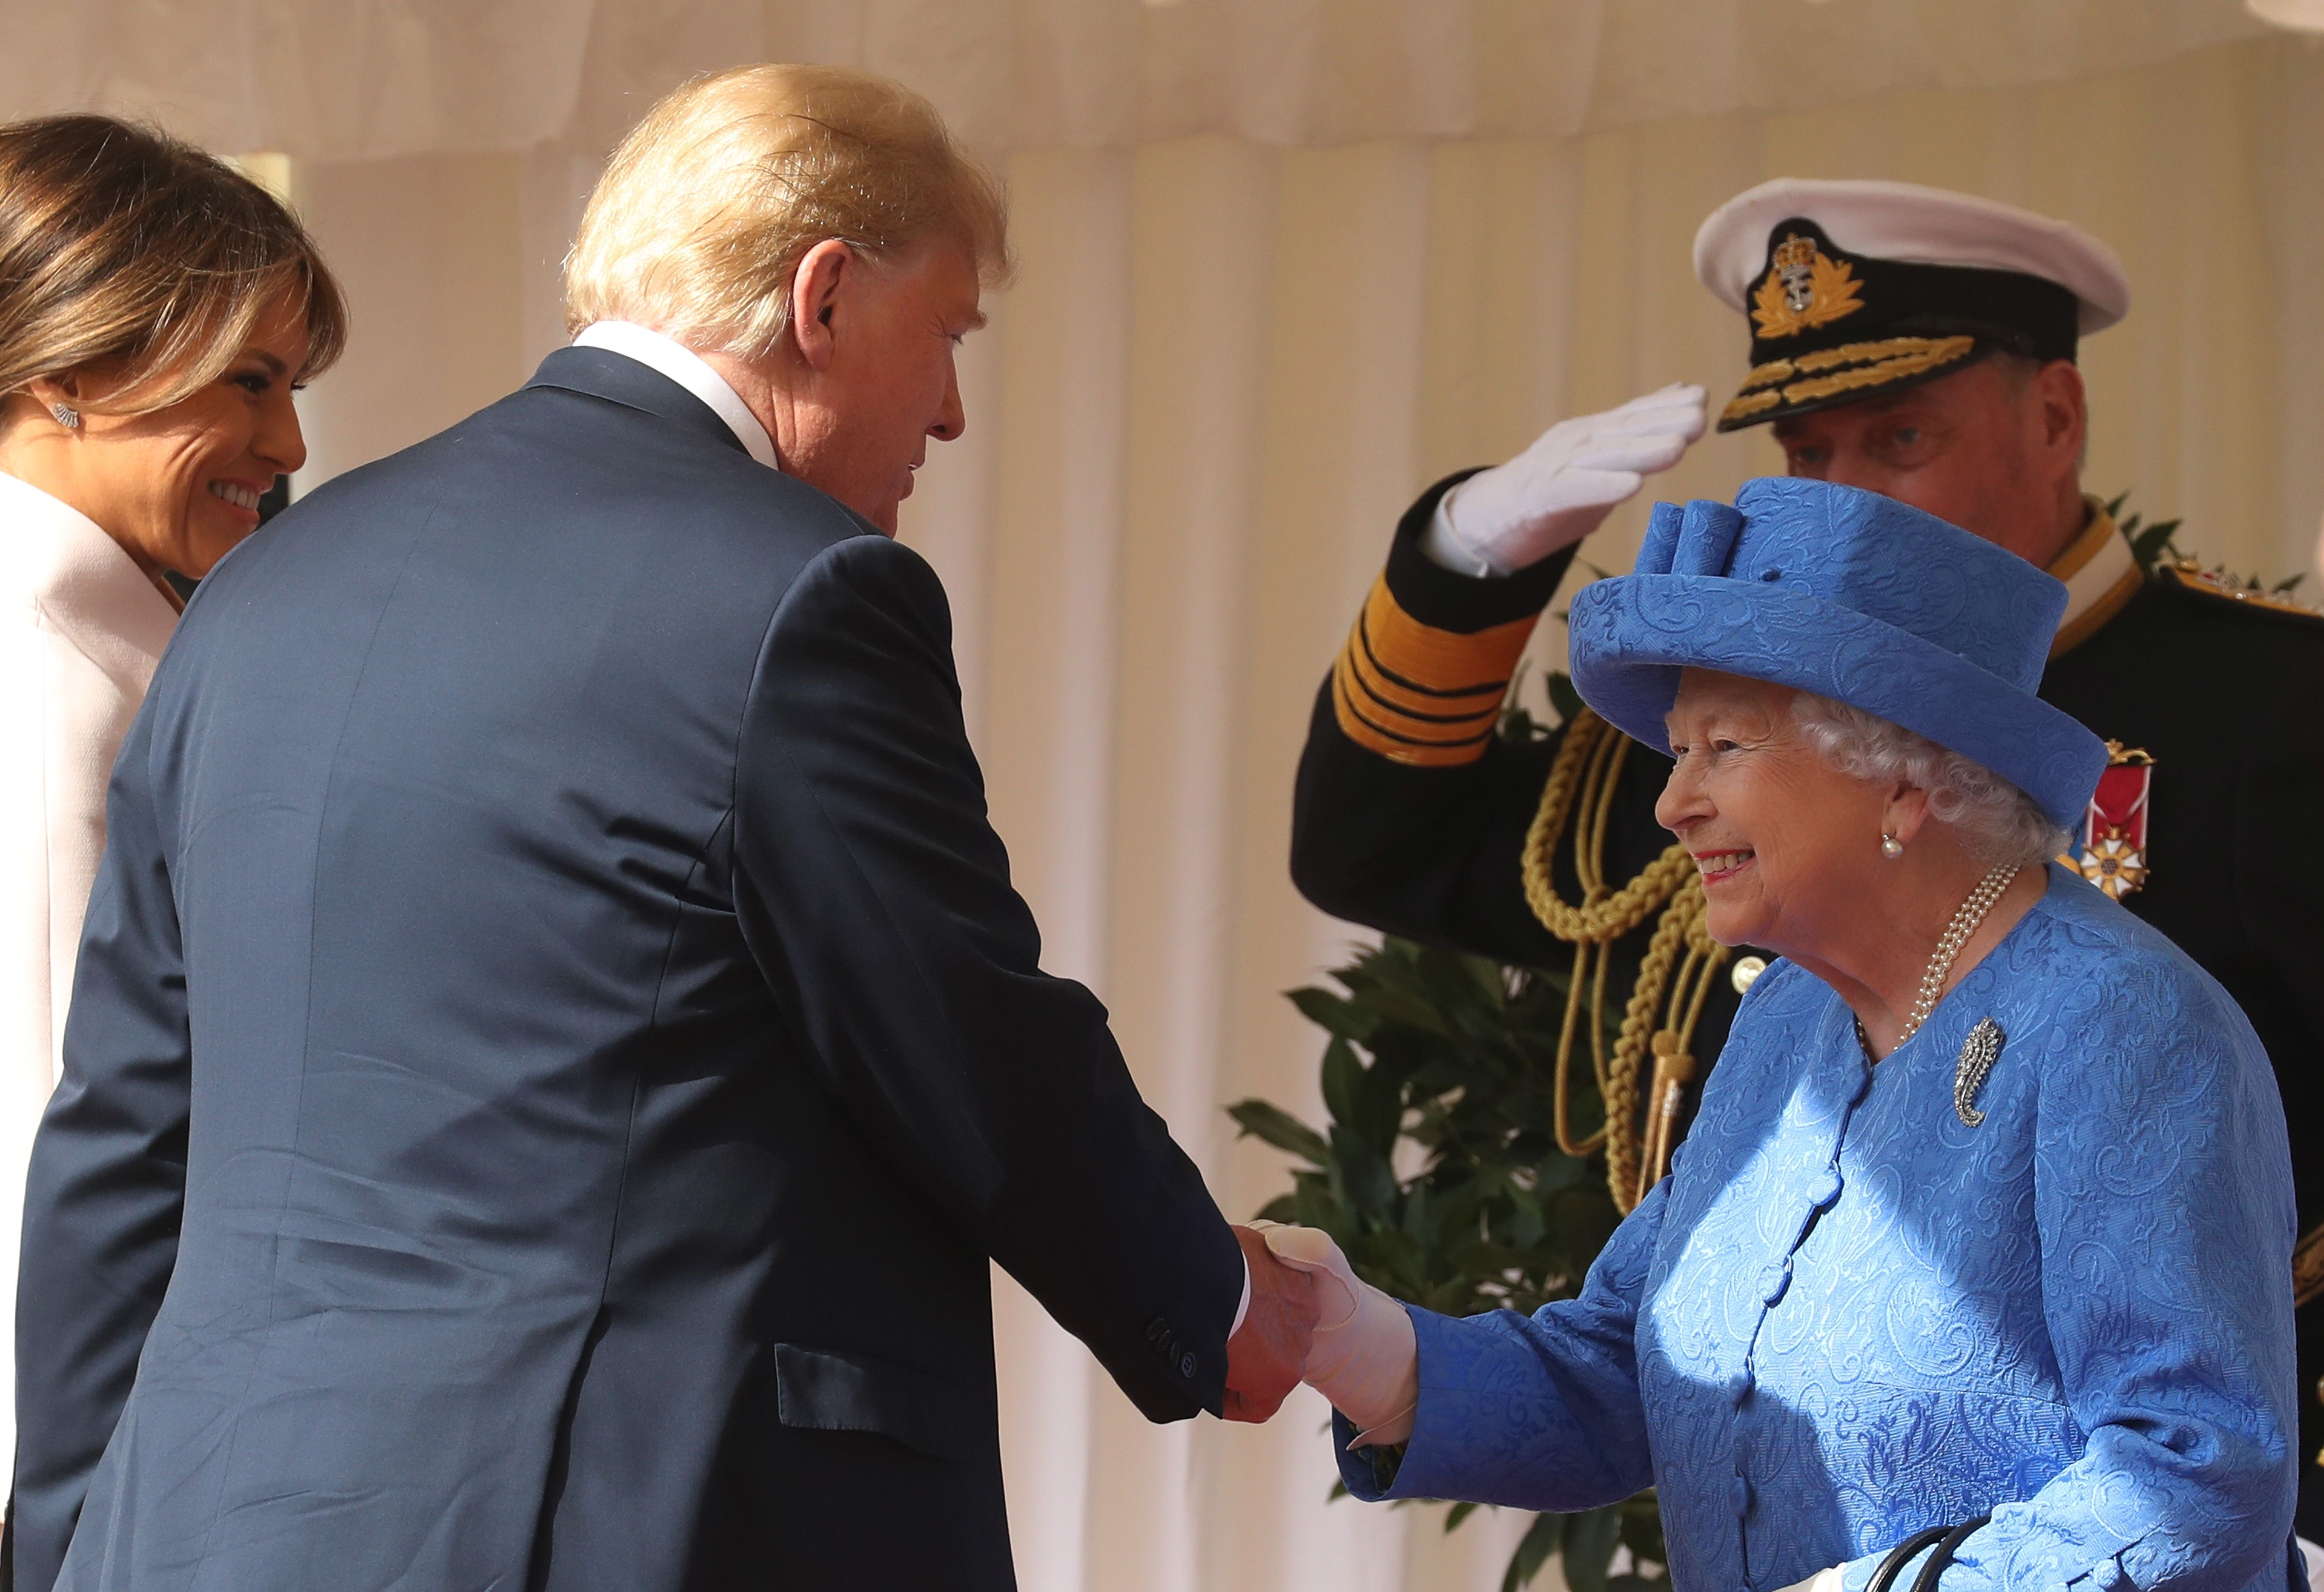 Did Donald Trump Break Royal Protocol By Walking In Front Of Queen